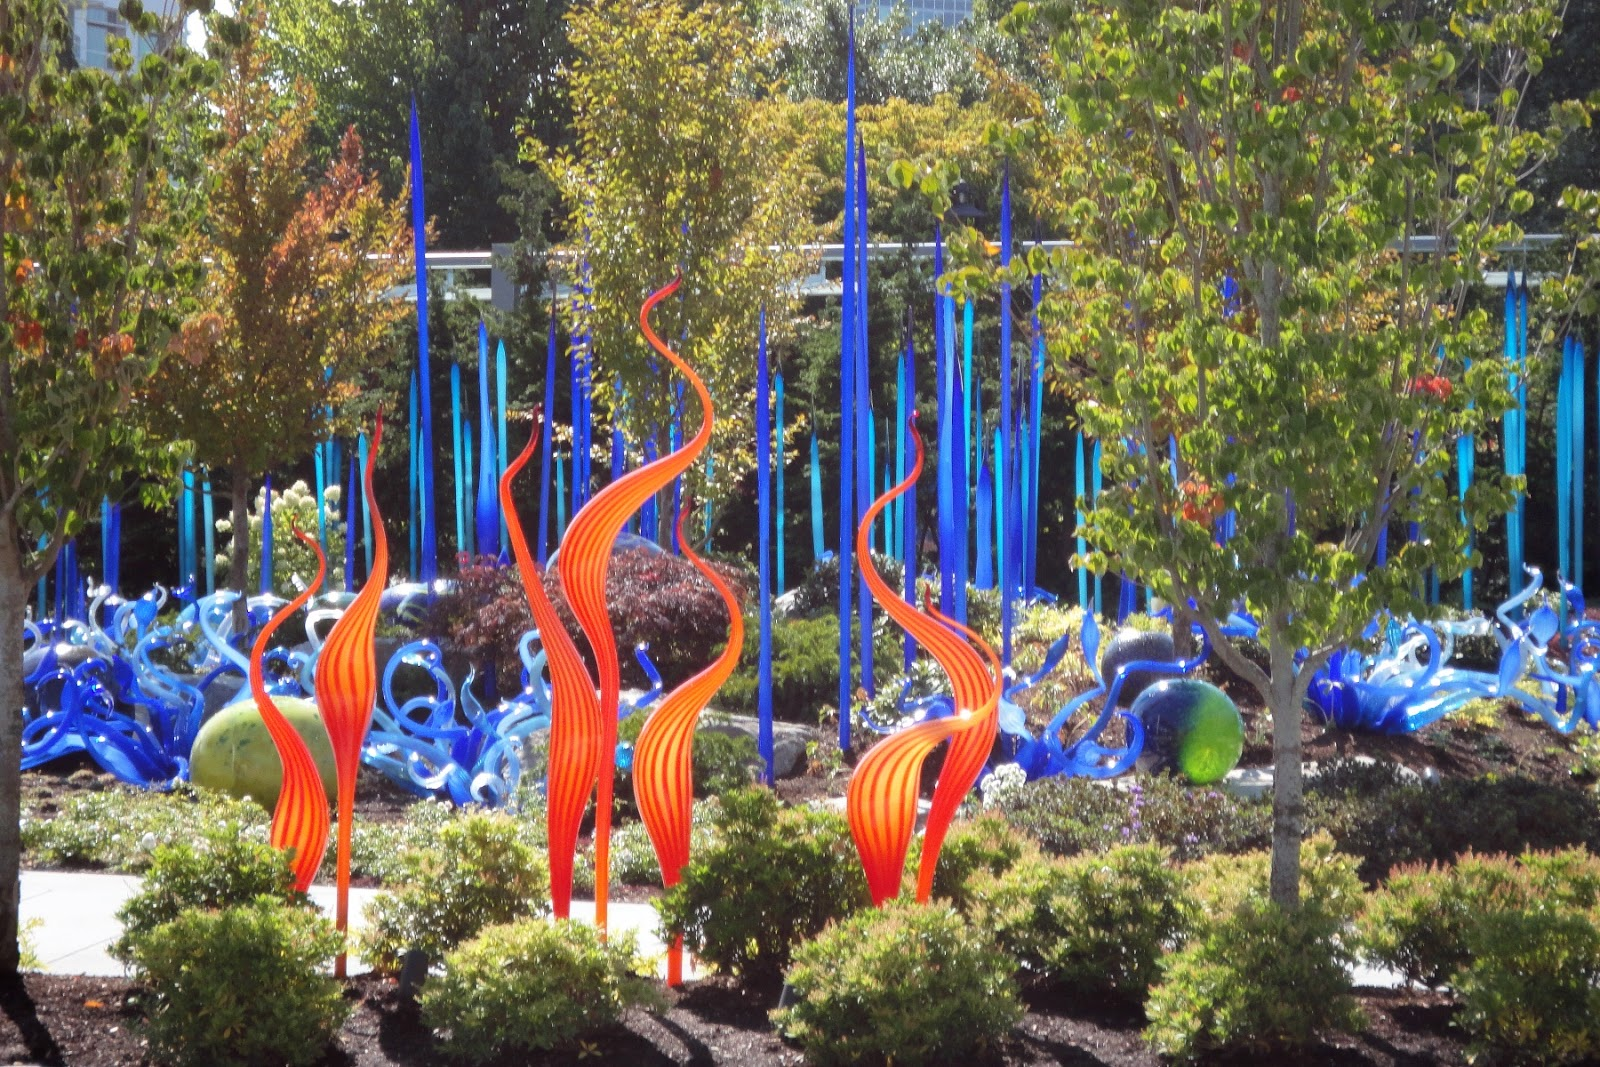 artscapes chihuly u0027s glass garden in seattle